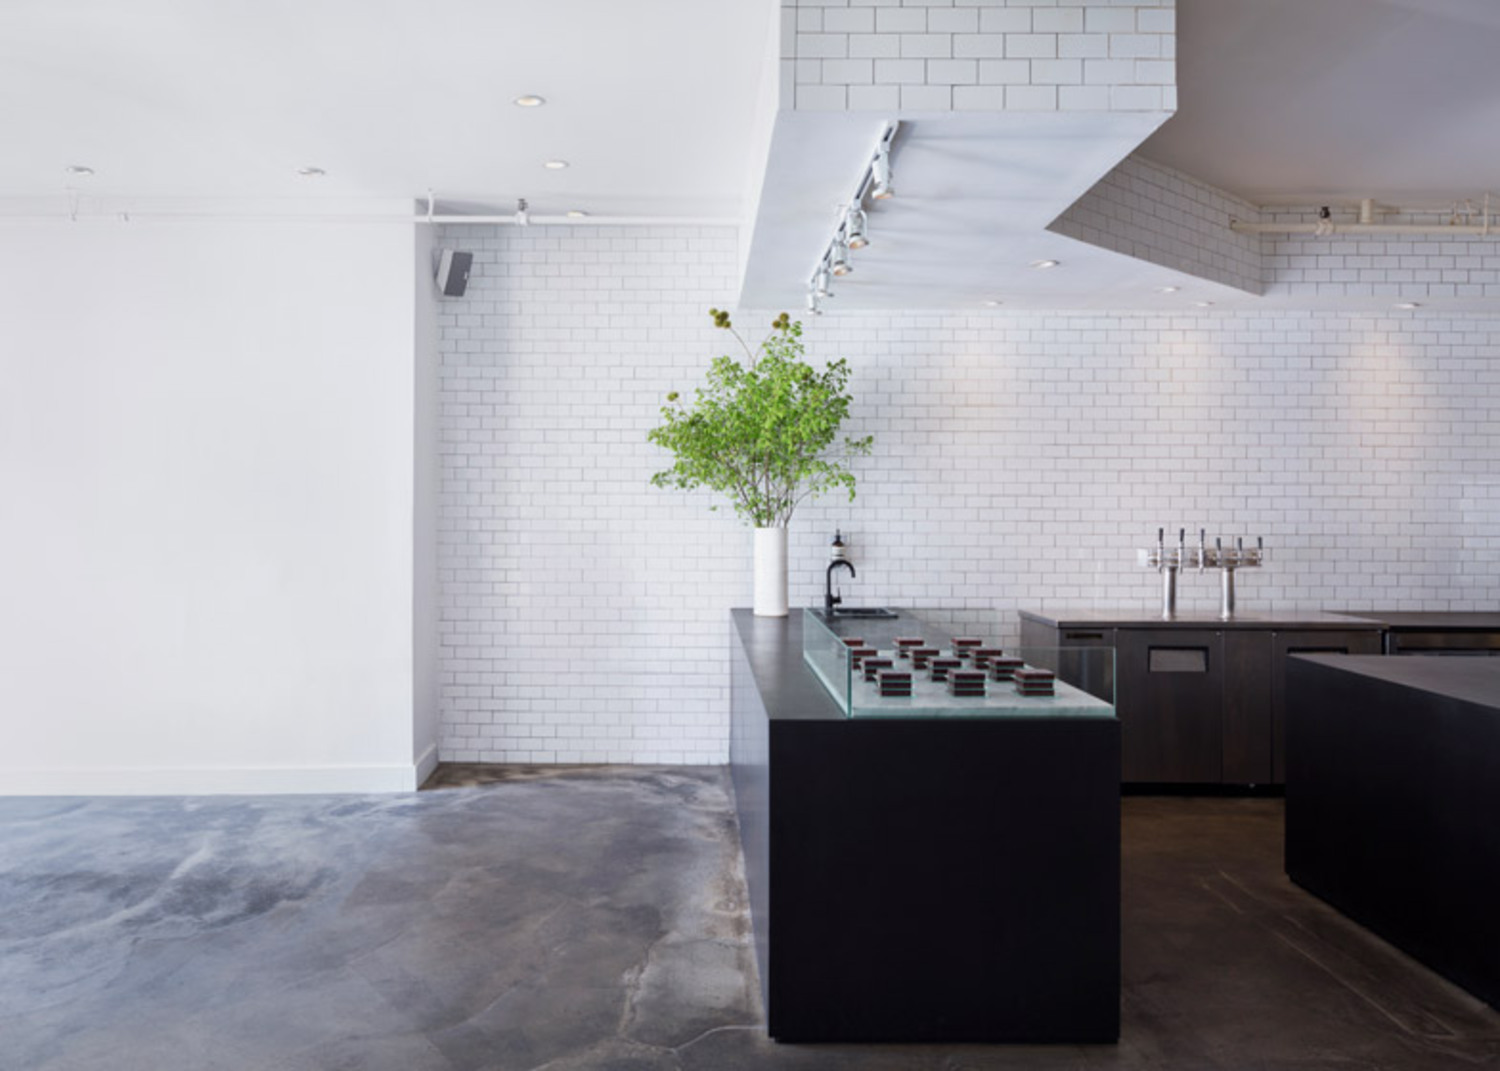 Mast Brothers designs its own Minimalist chocolate shop in Brooklyn